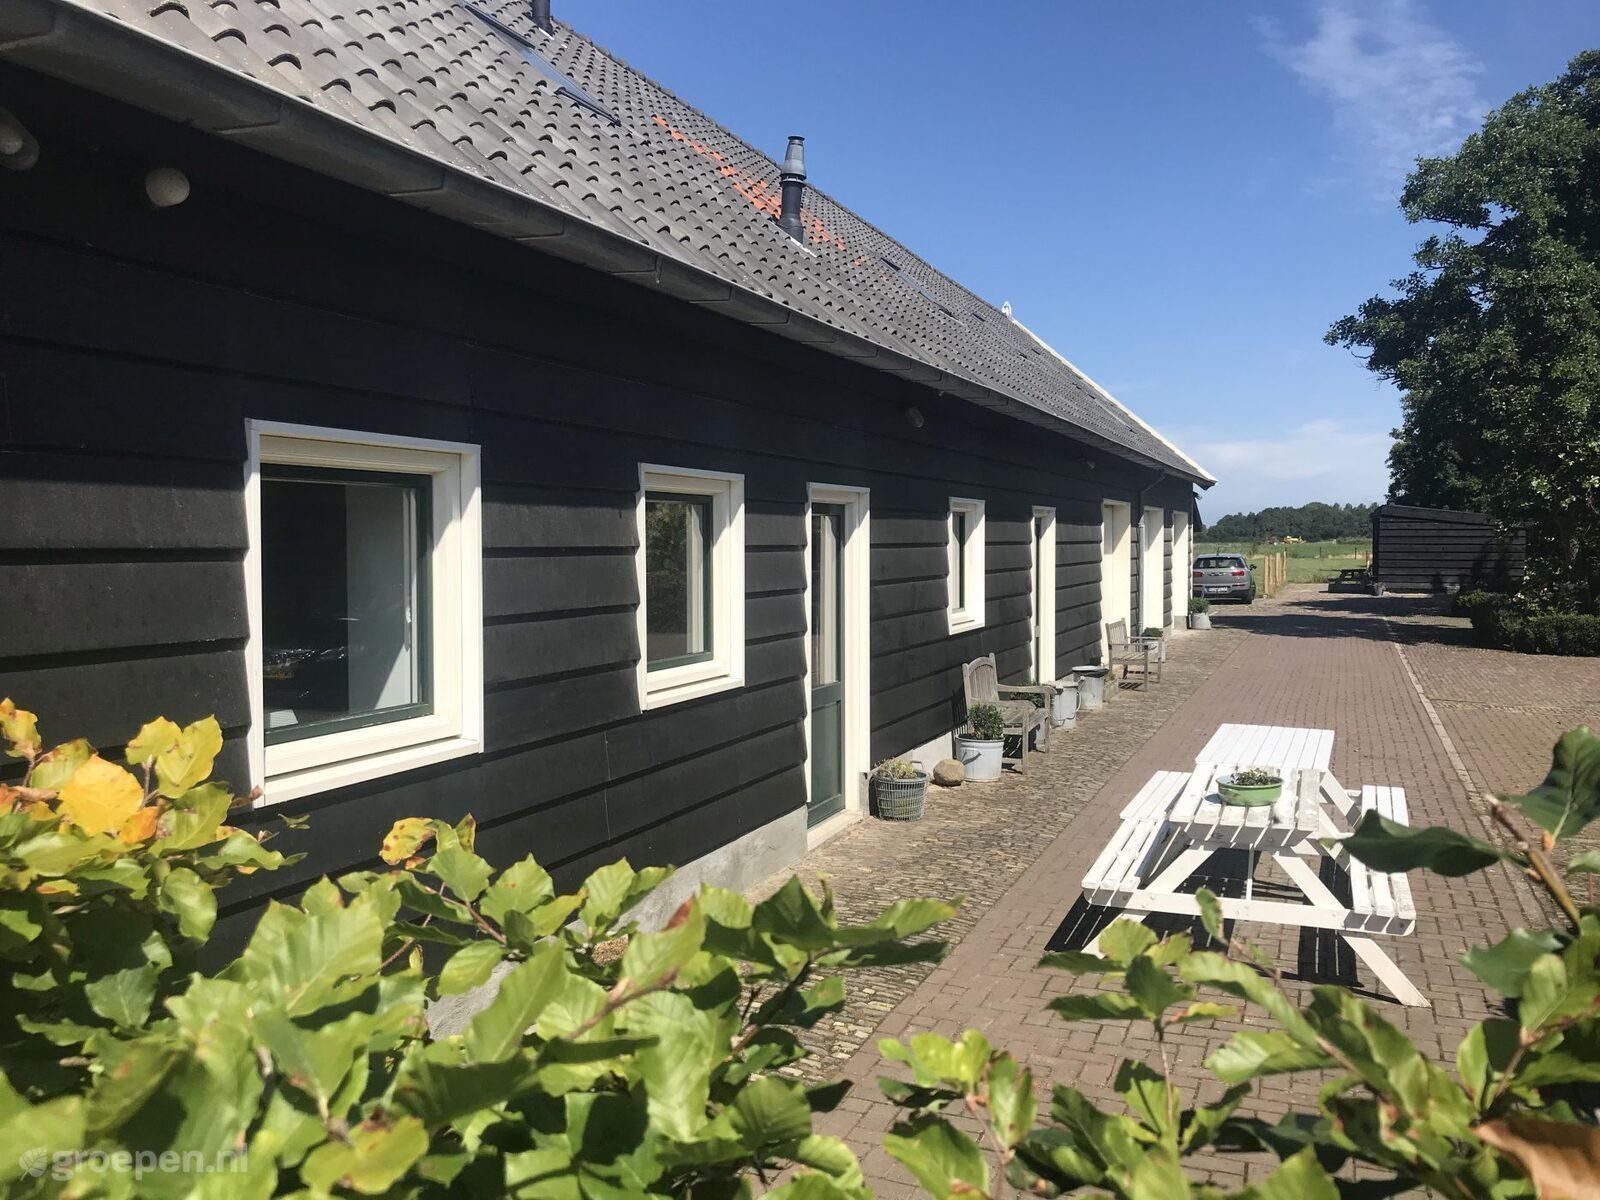 Group accommodation Serooskerke